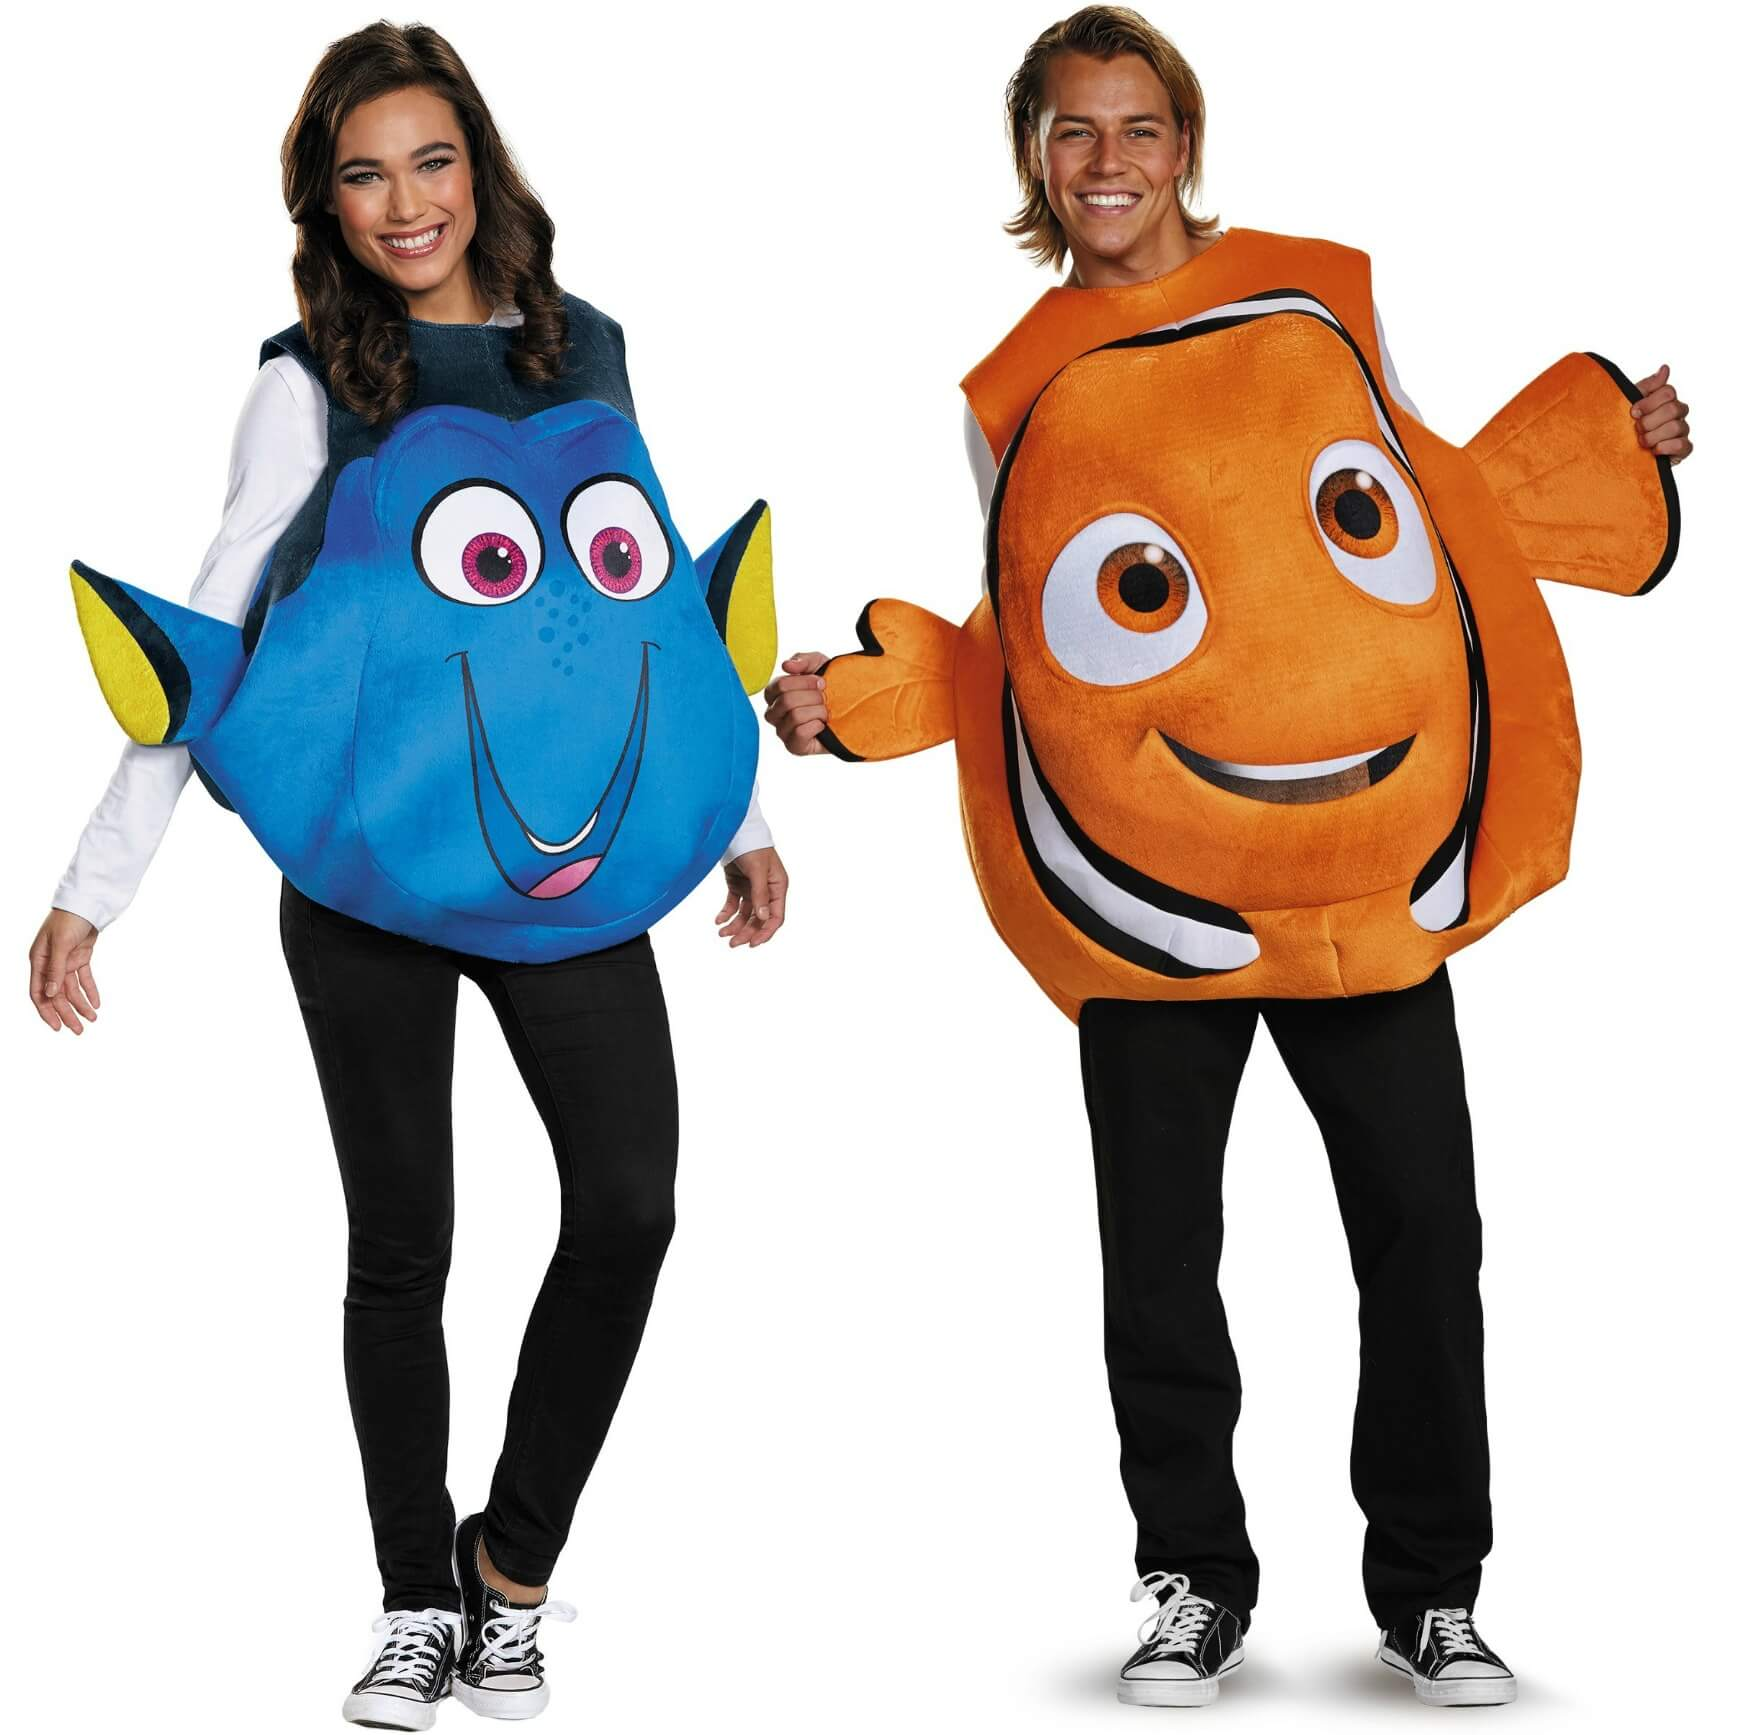 dory and nemo halloween costumes